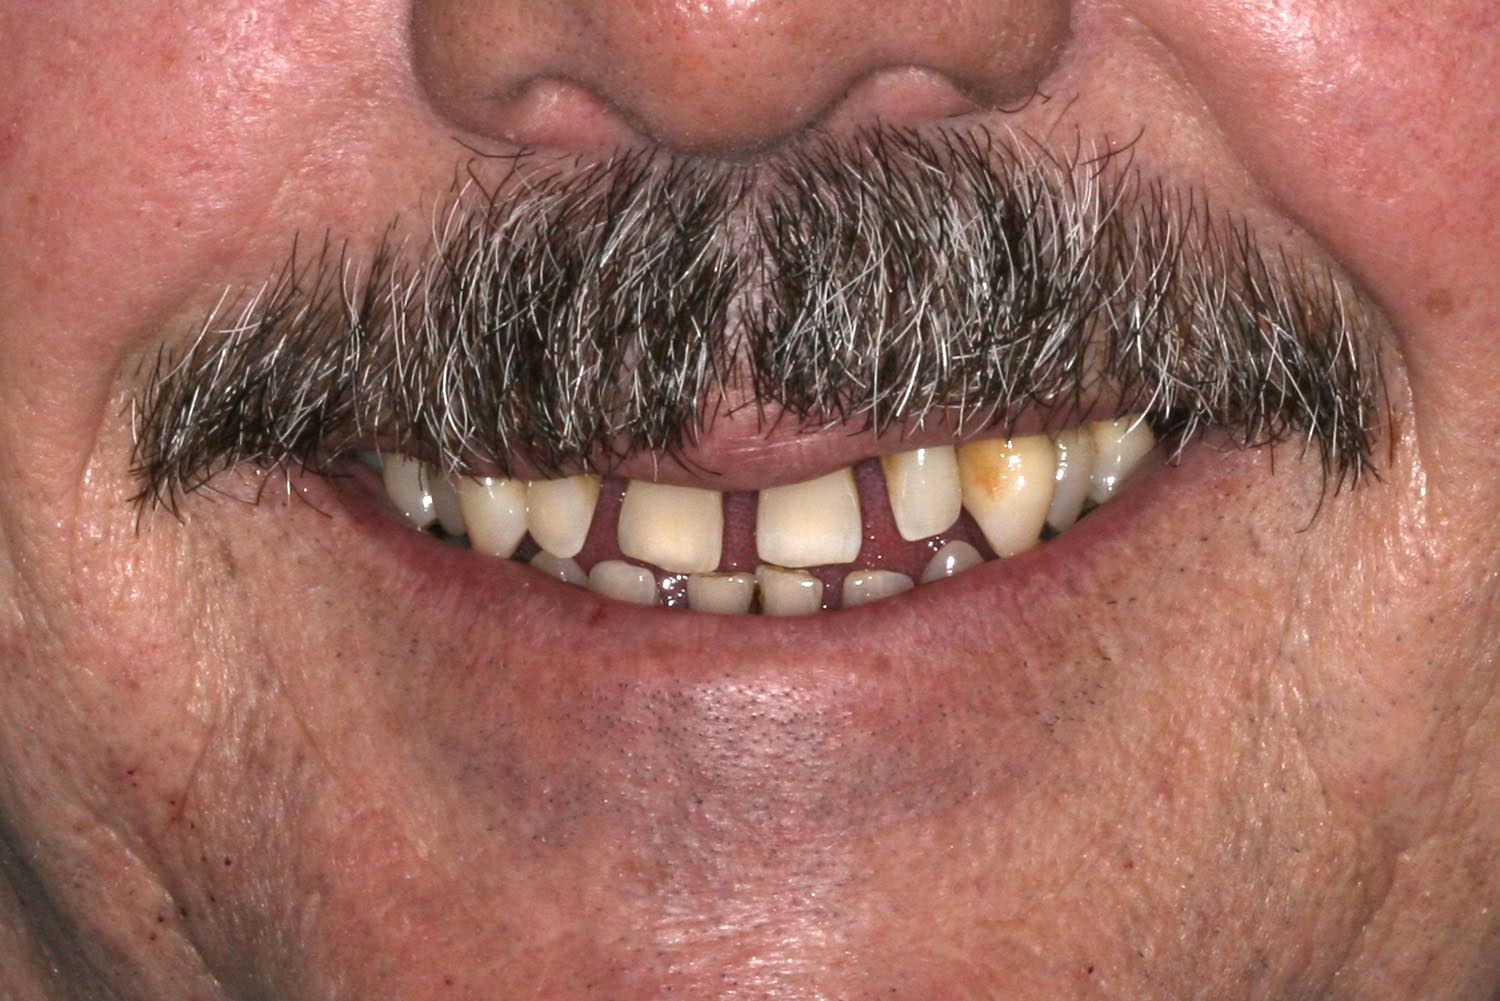 A set of teeth for a mixed full mouth rehabilitation